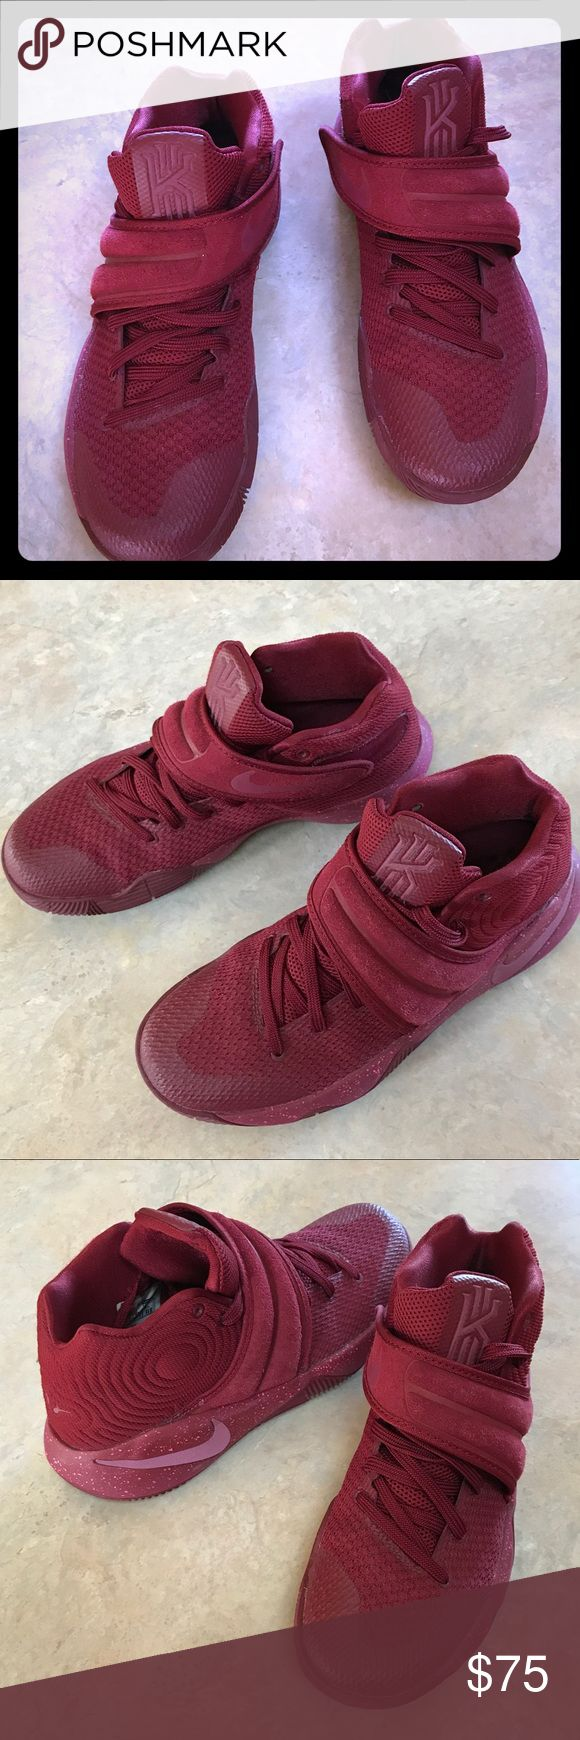 🔴Kyrie's Kyrie Irving's in Merlot good condition Nike Shoes Athletic Shoes